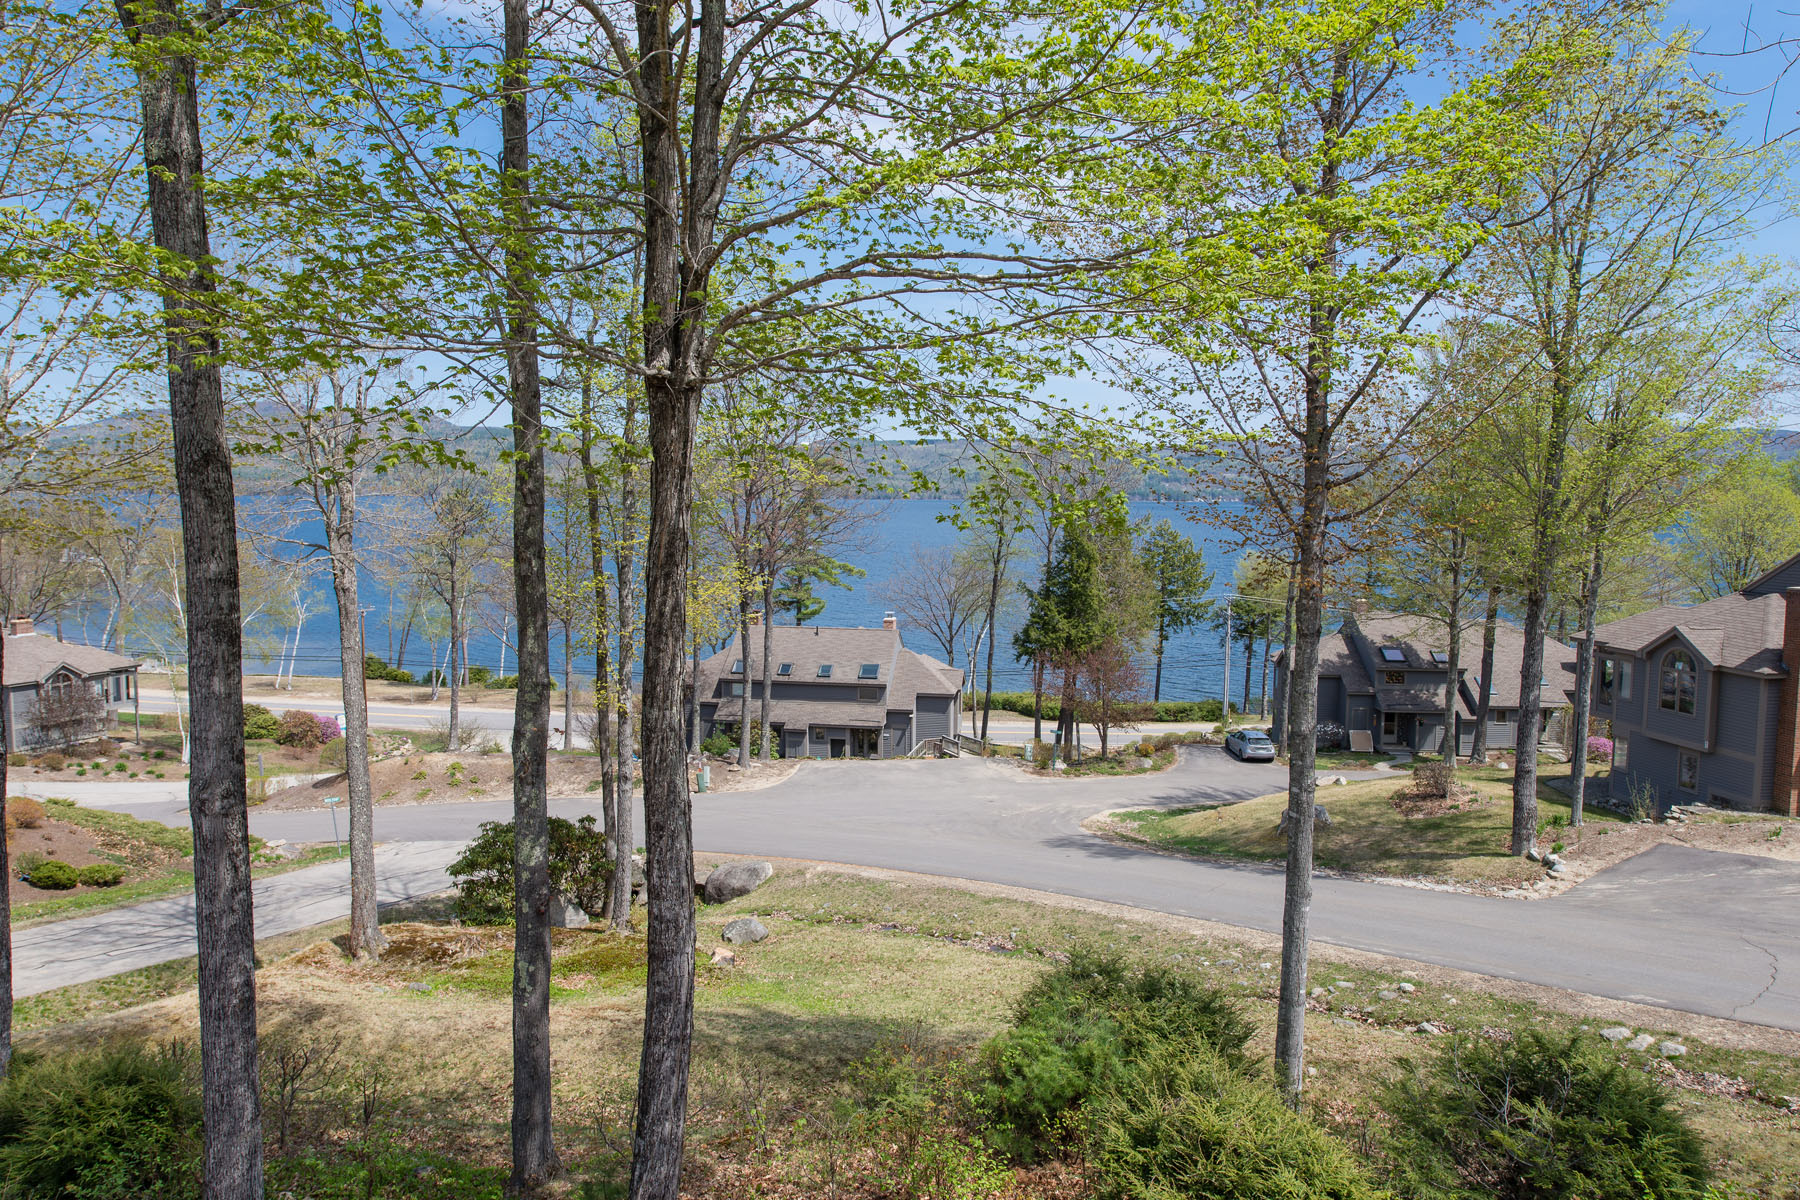 Condominium for Sale at The Ledges on Newfound Lake 35 South Ledge Loop Alexandria, New Hampshire 03222 United States